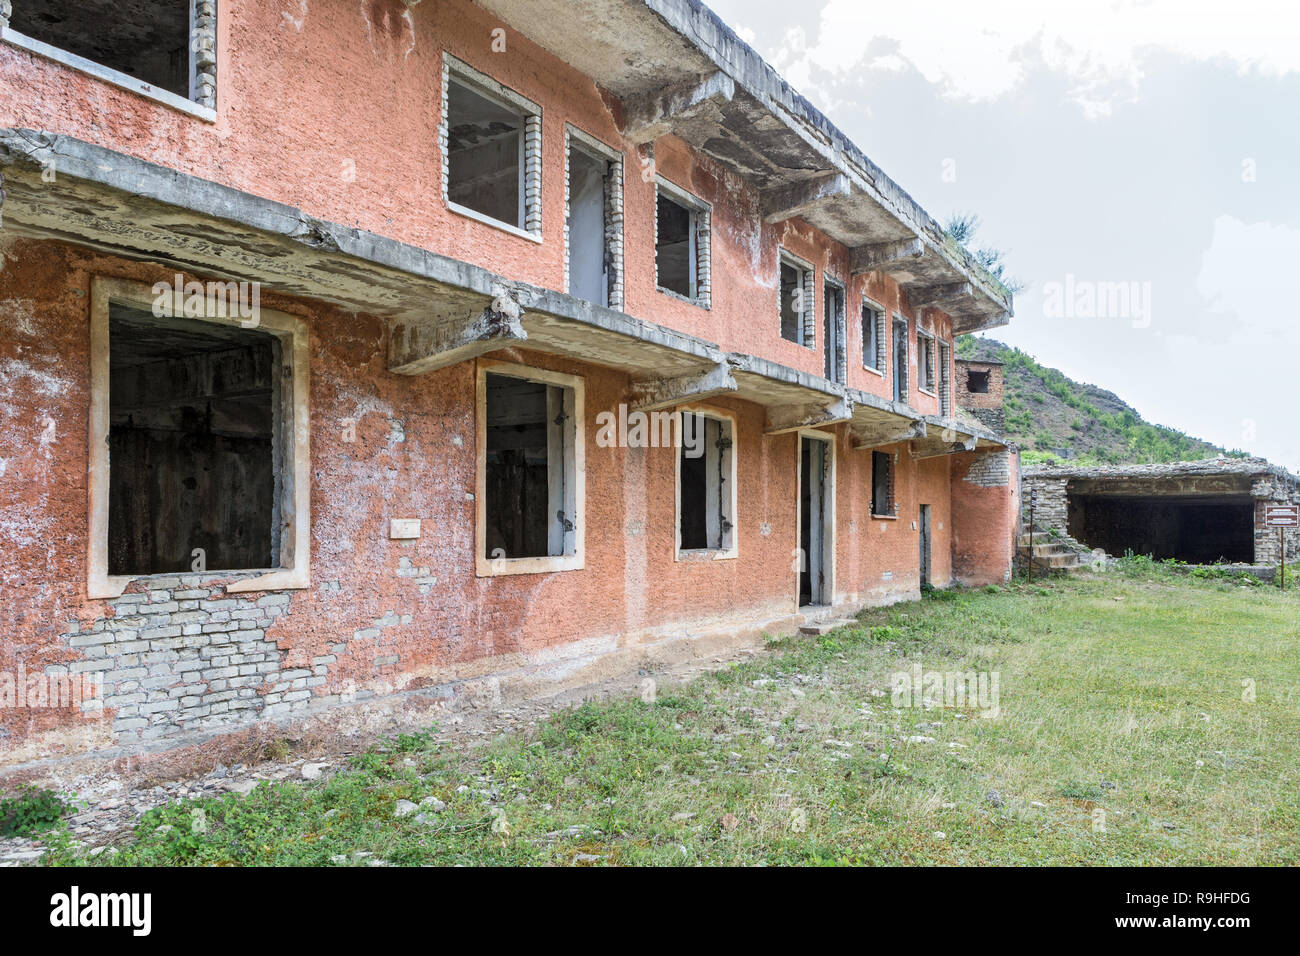 Library and medical / dental centre, Spac communist prisoner torture camp, Albania - Stock Image